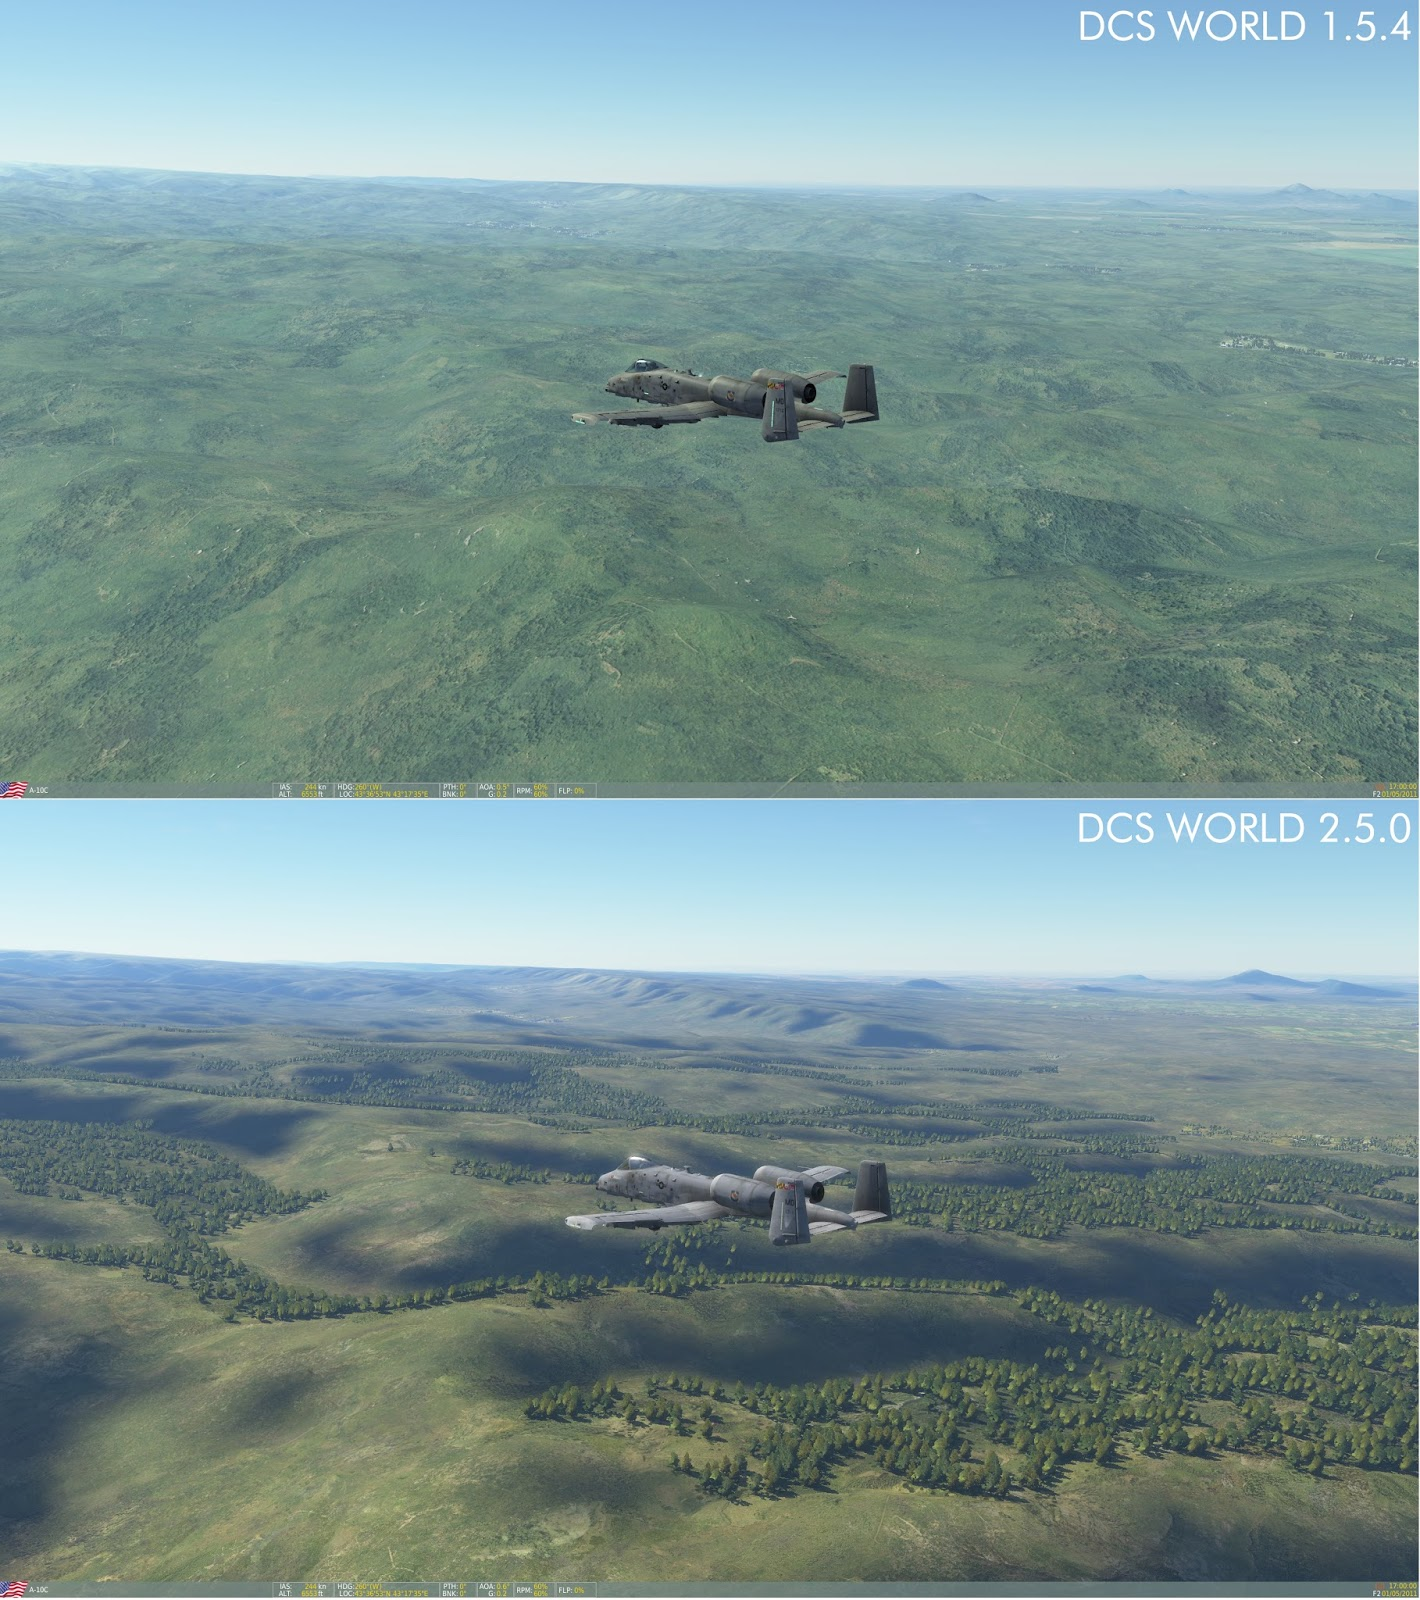 Allied flying force and dcs fans escenarios dcs world 25 fuente eagle dynamics gumiabroncs Images